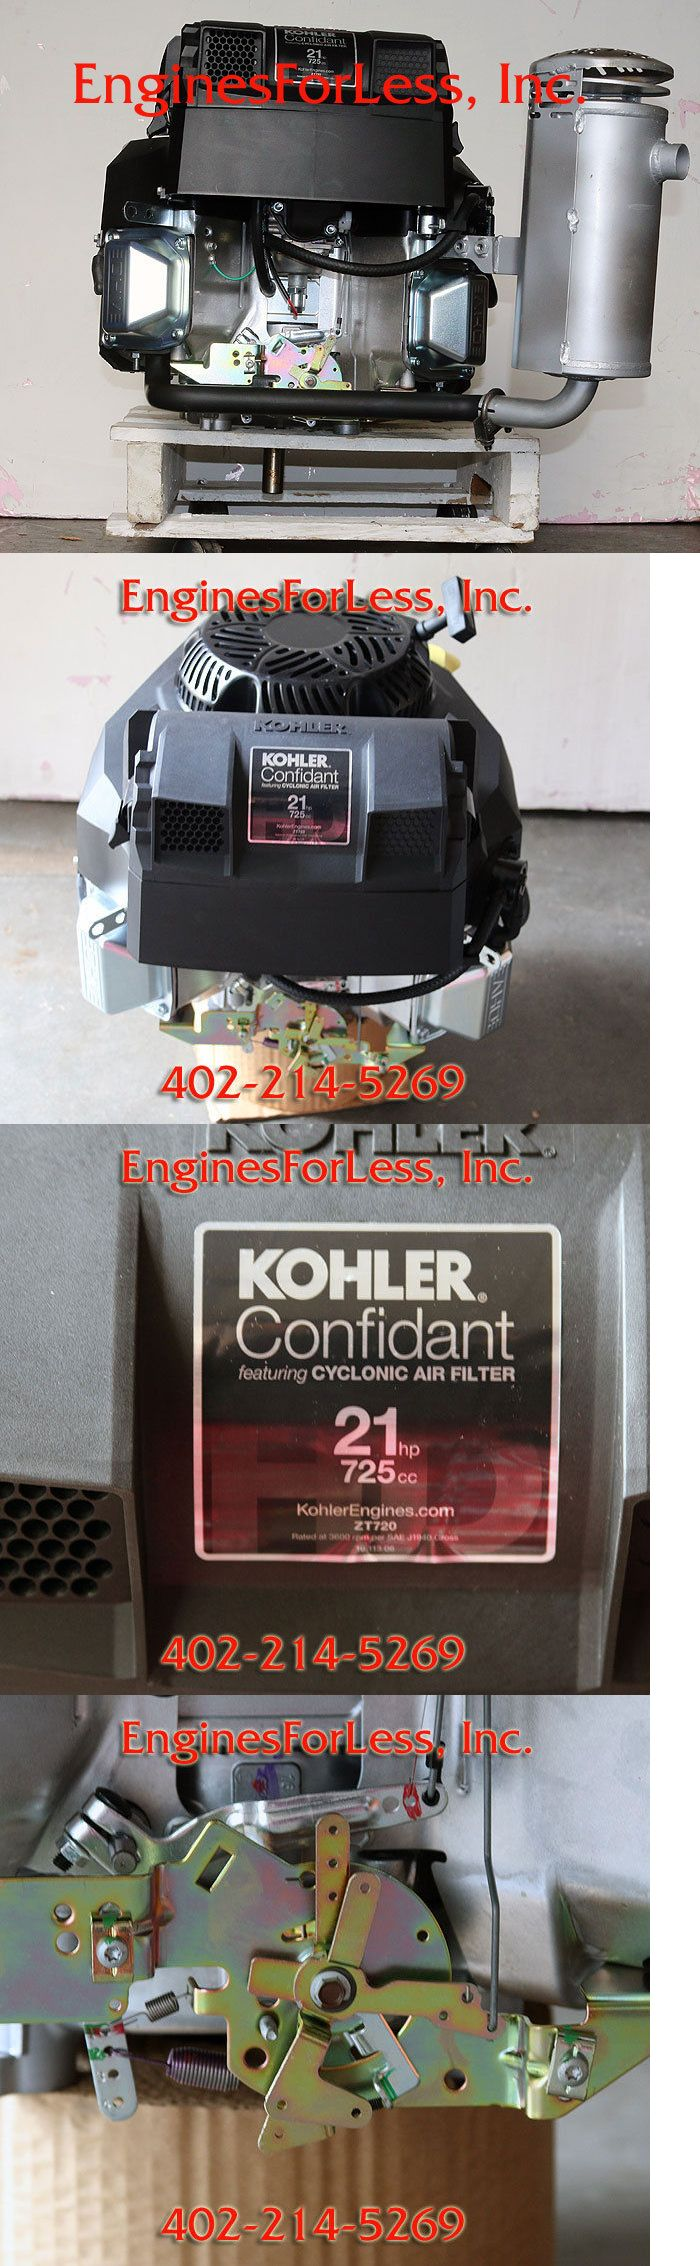 Toro timecutter z and wheel horse residential duty riding mowers are - Riding Mowers 177021 Kohler Confidant Pazt7203016 Rsm 21 Hp Walk Behind Mower Engine Exmark Scag